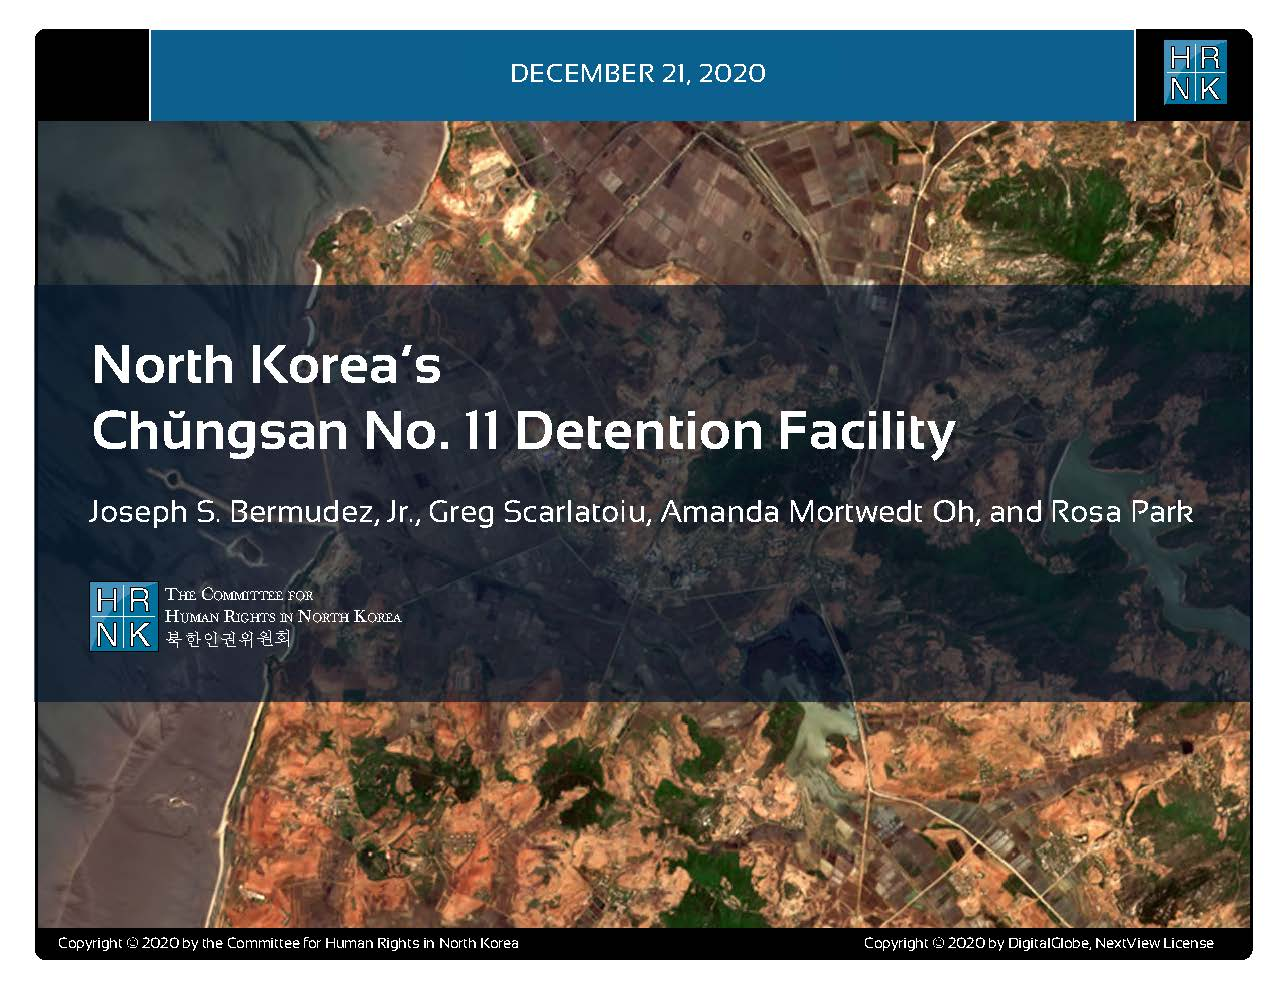 North Korea's Chŭngsan No. 11 Detention Facility